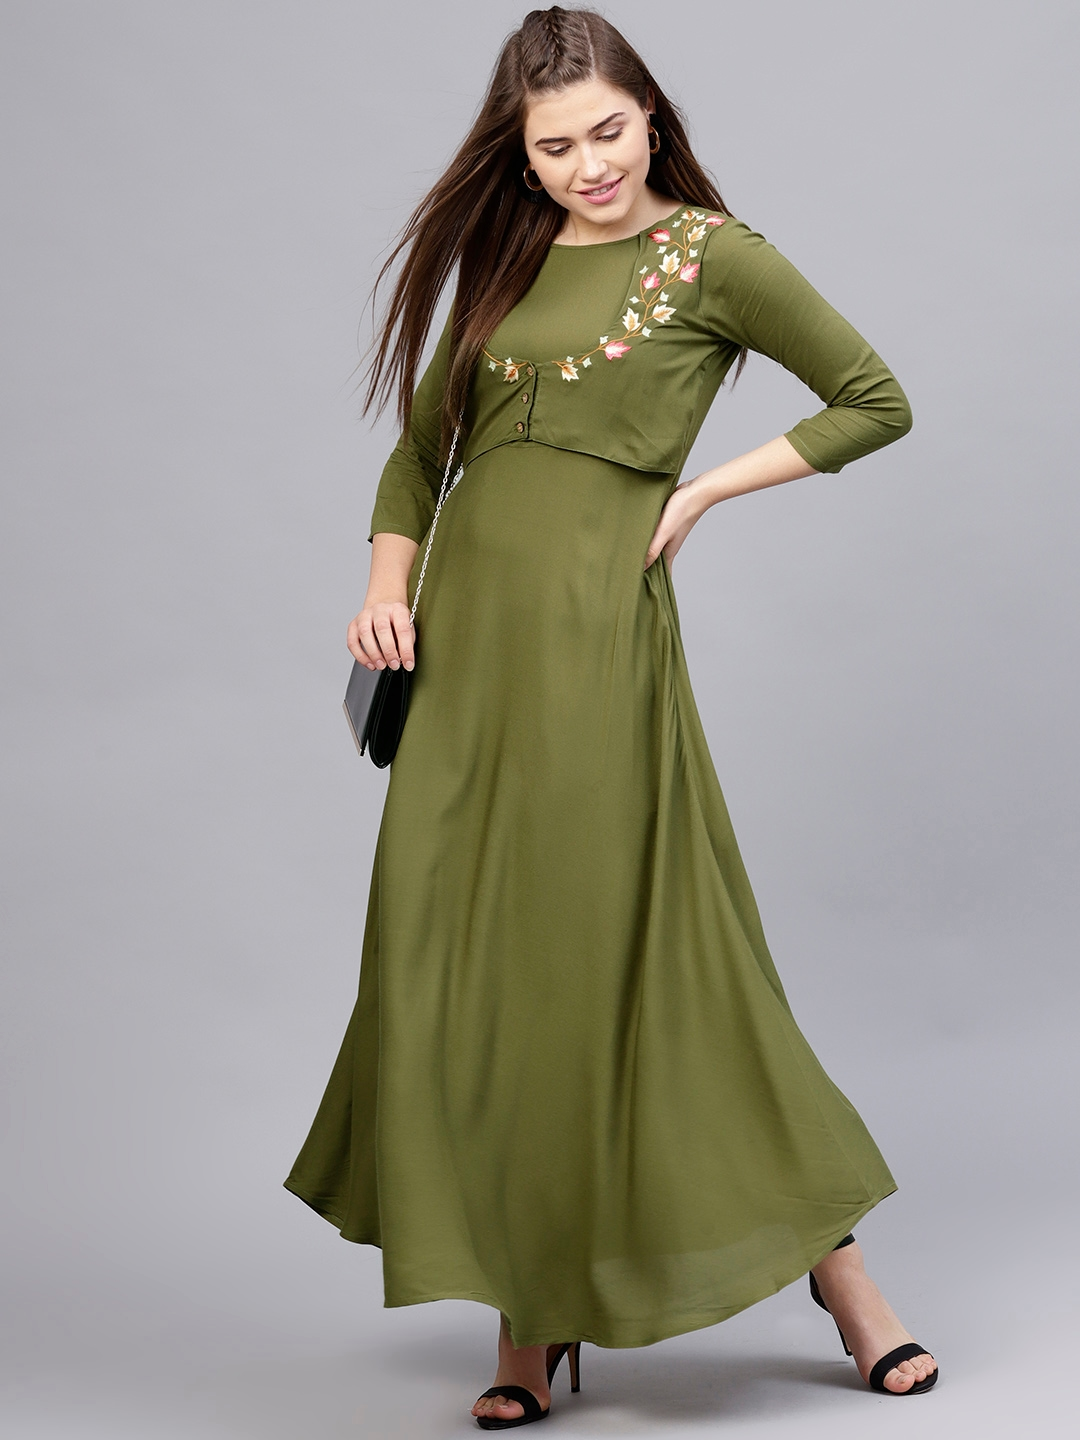 Buy Athena Women Olive Green Solid Layered Maxi Dress Dresses For